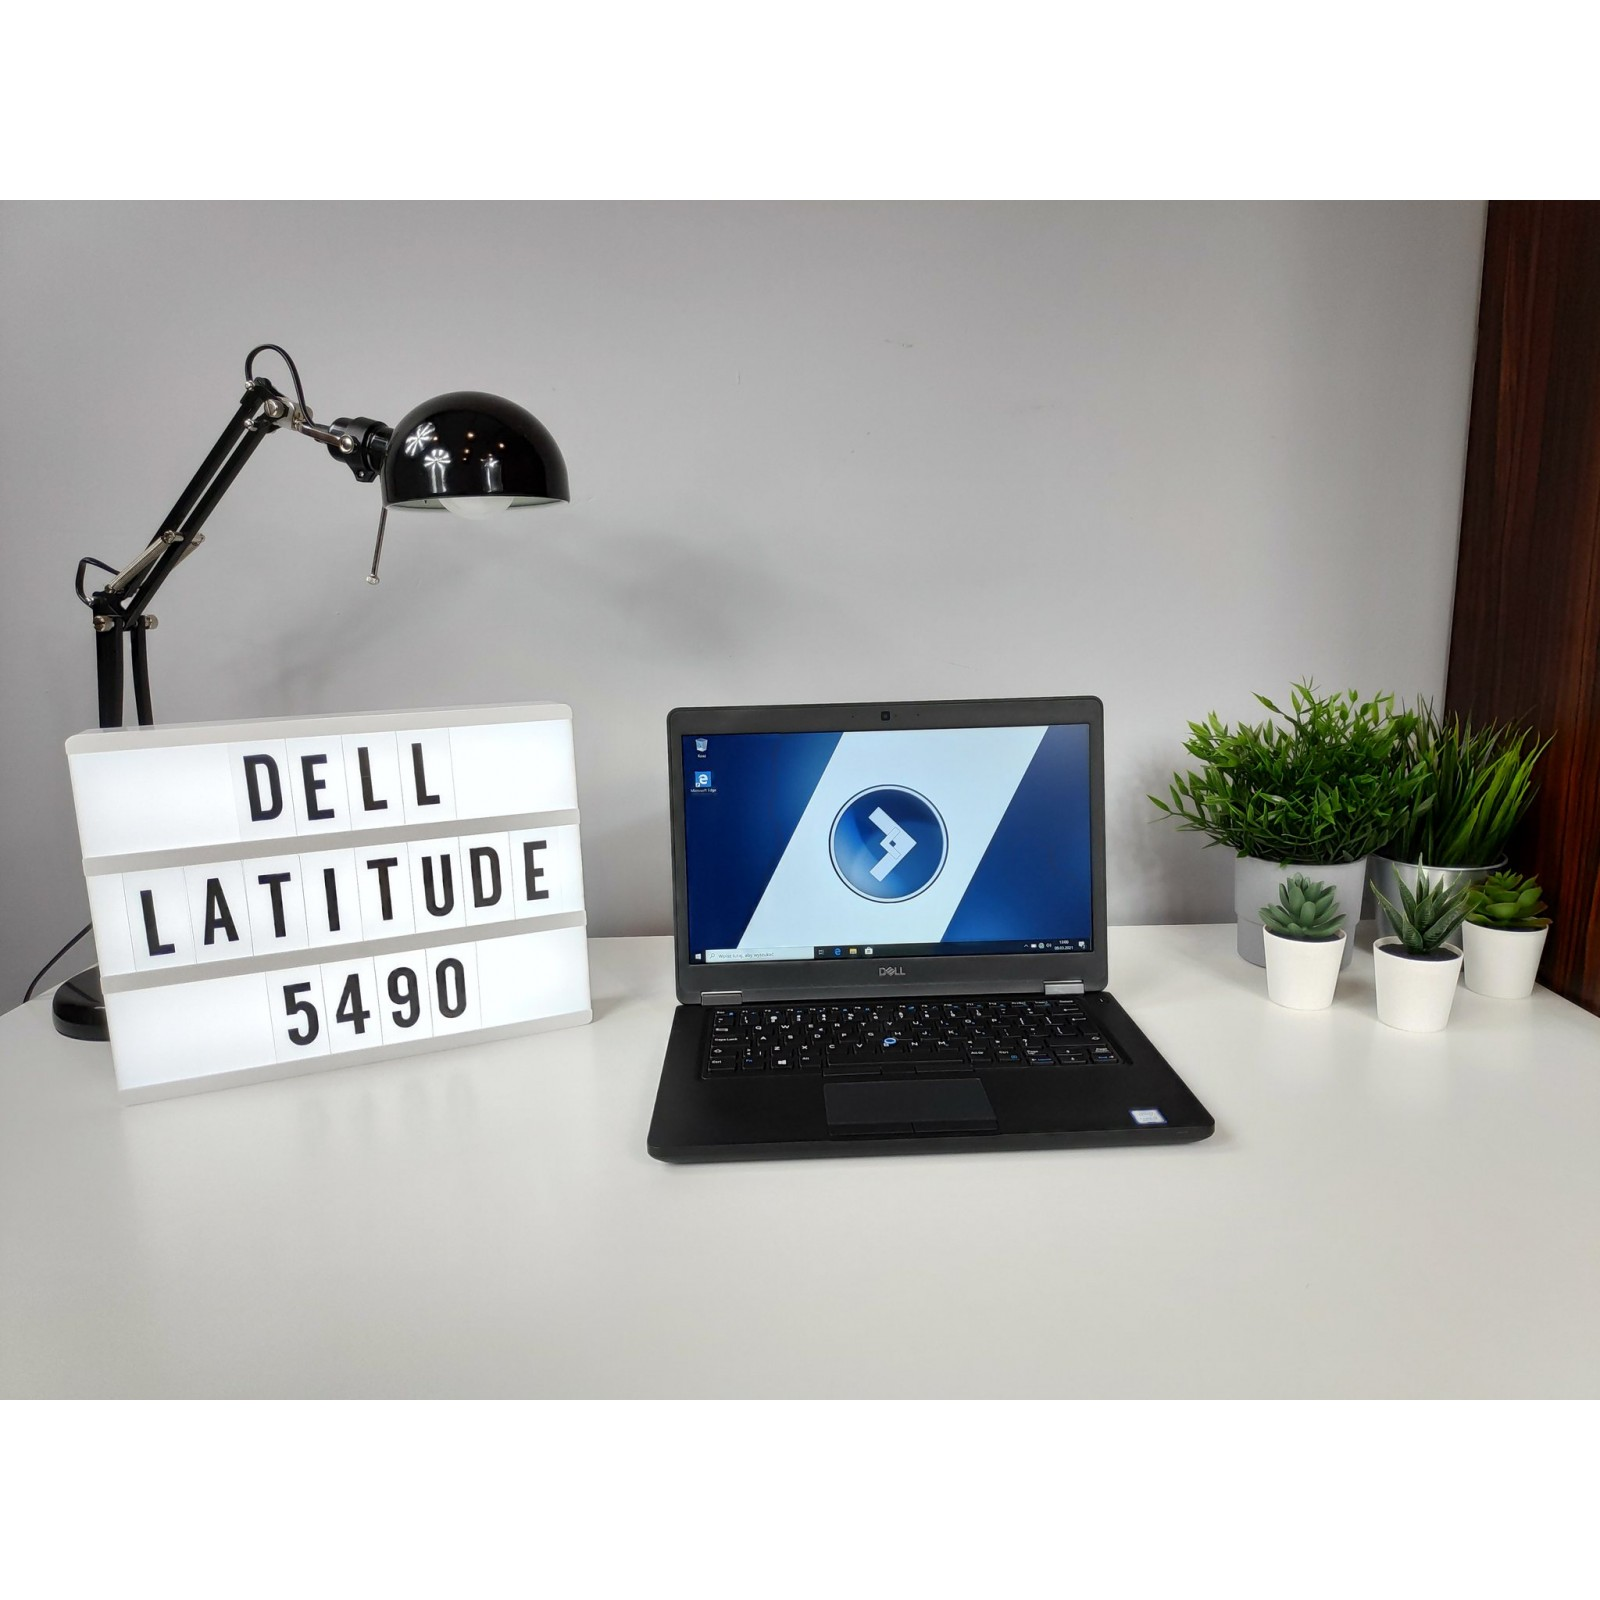 Dell Latitude 5490 i3 8GB RAM 240 GB...